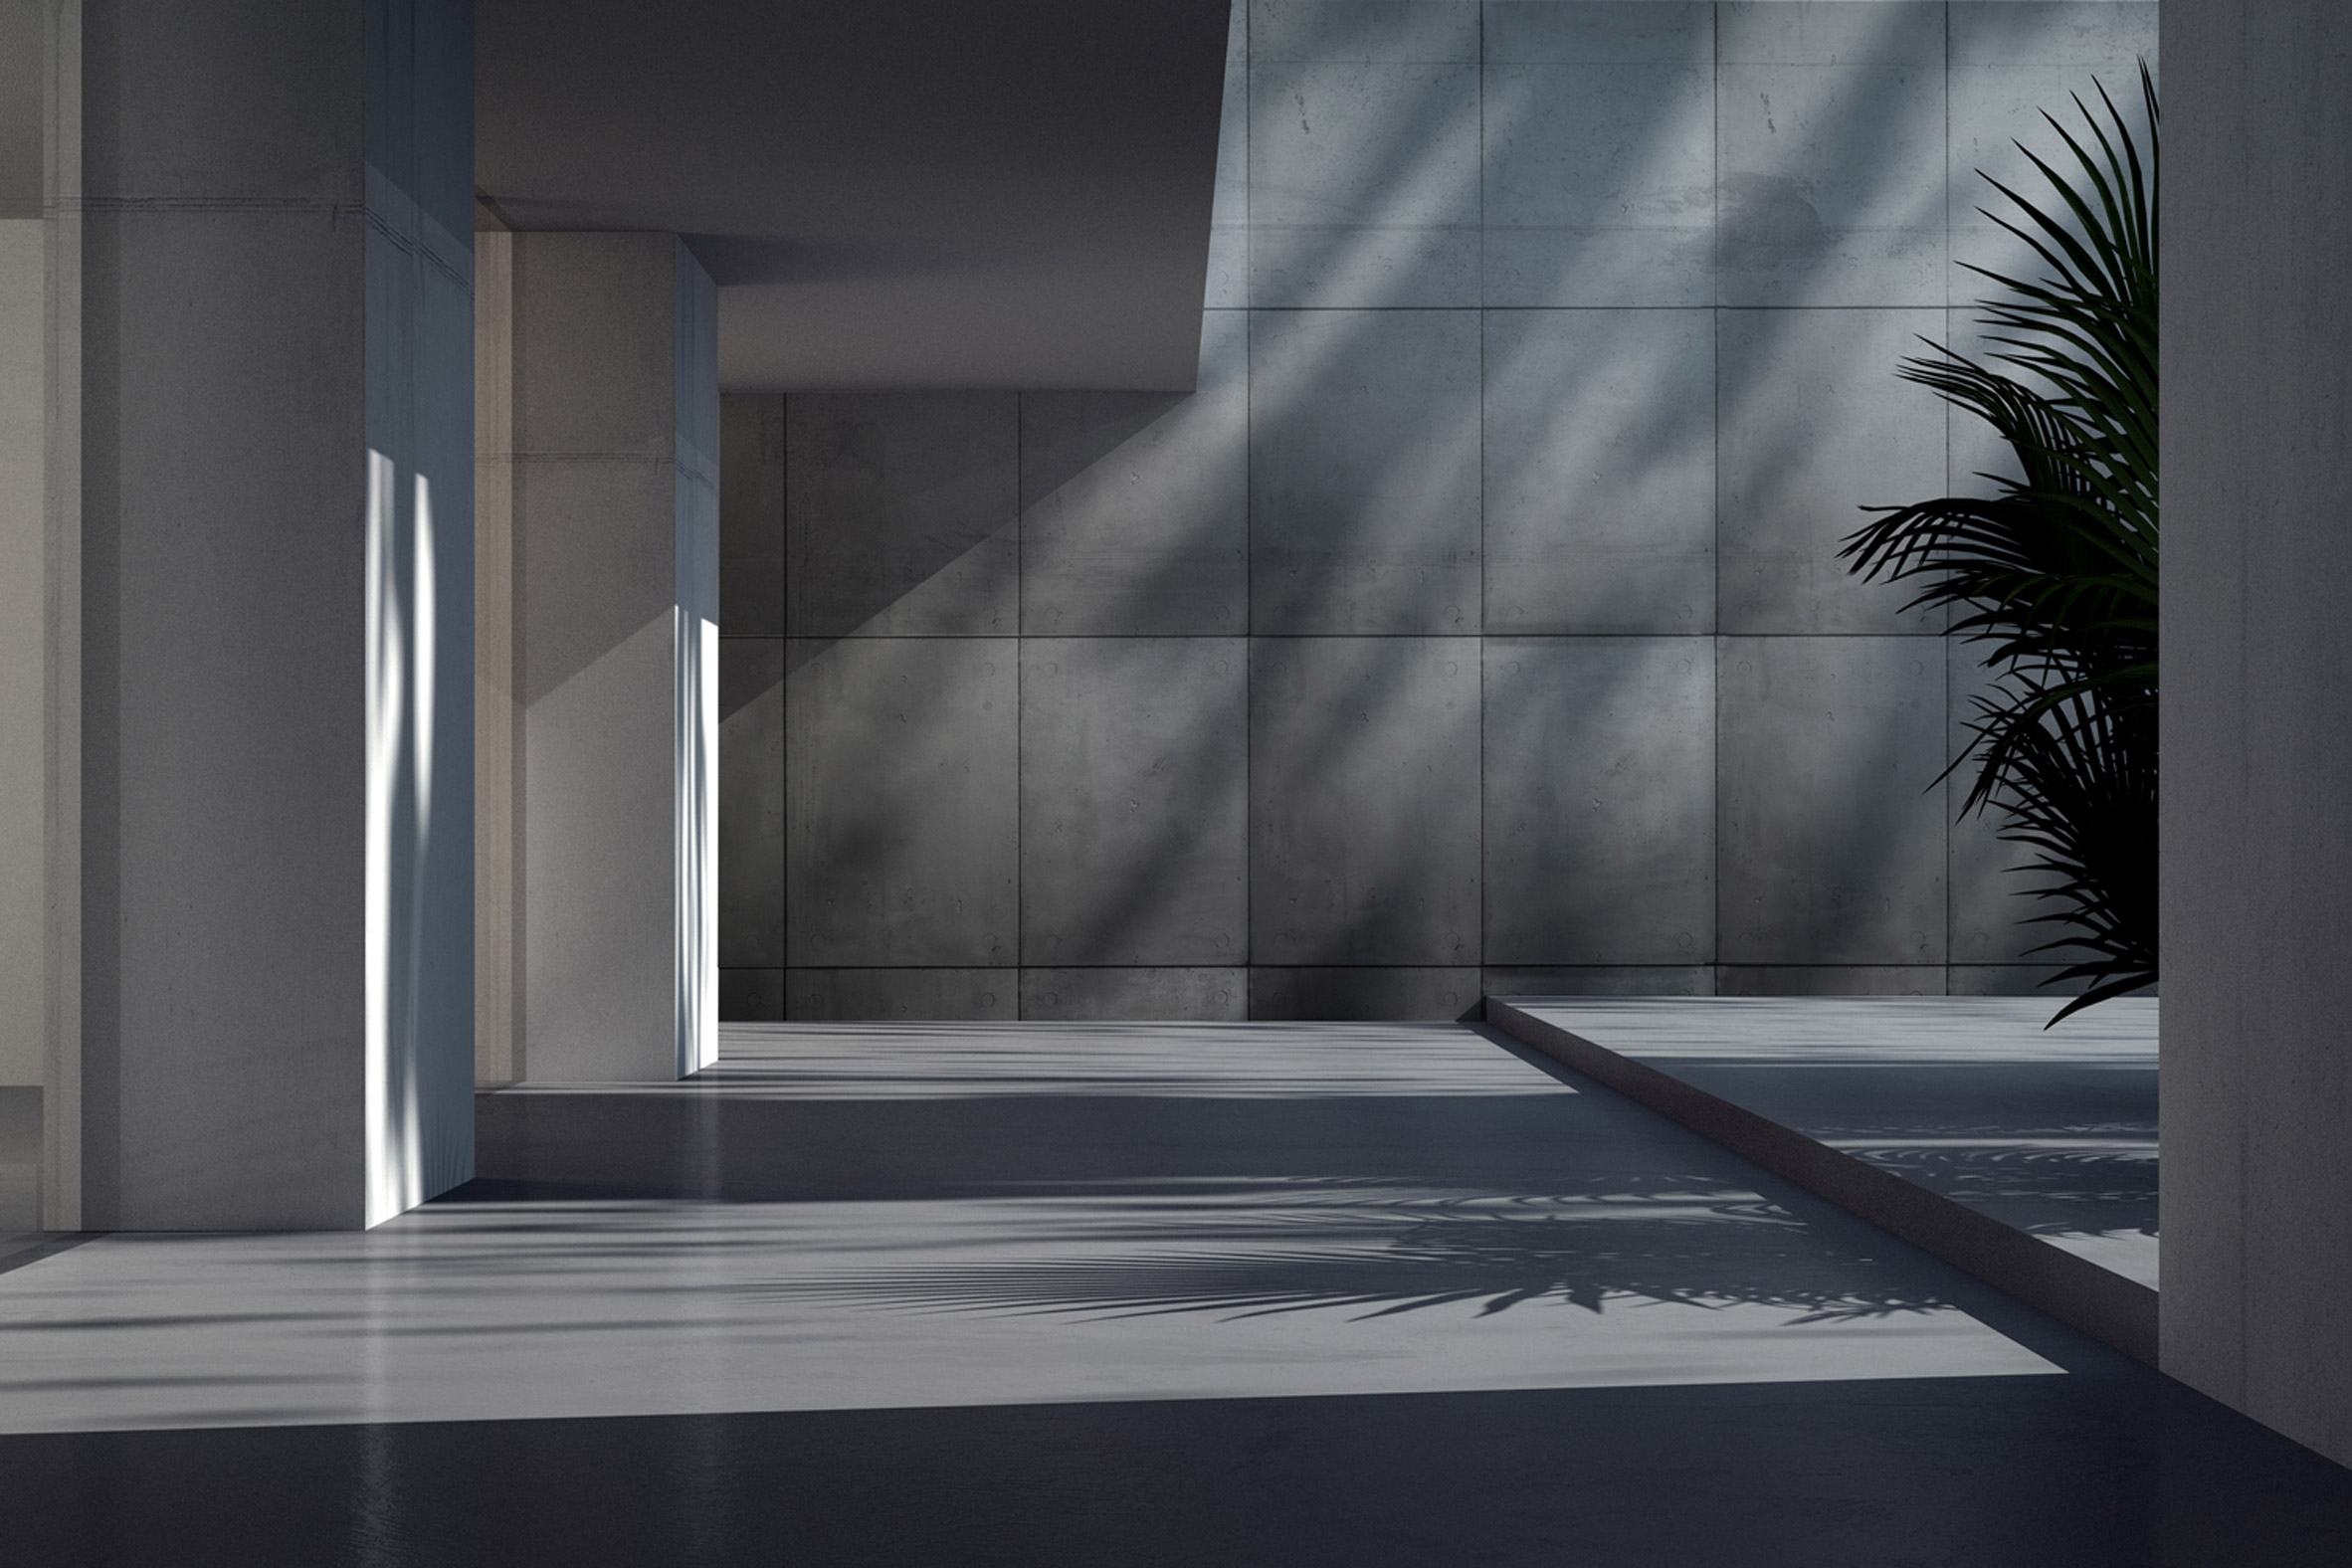 Ideal Work is an Italian finishing brand that specialises in flooring, wall coatings and finishes